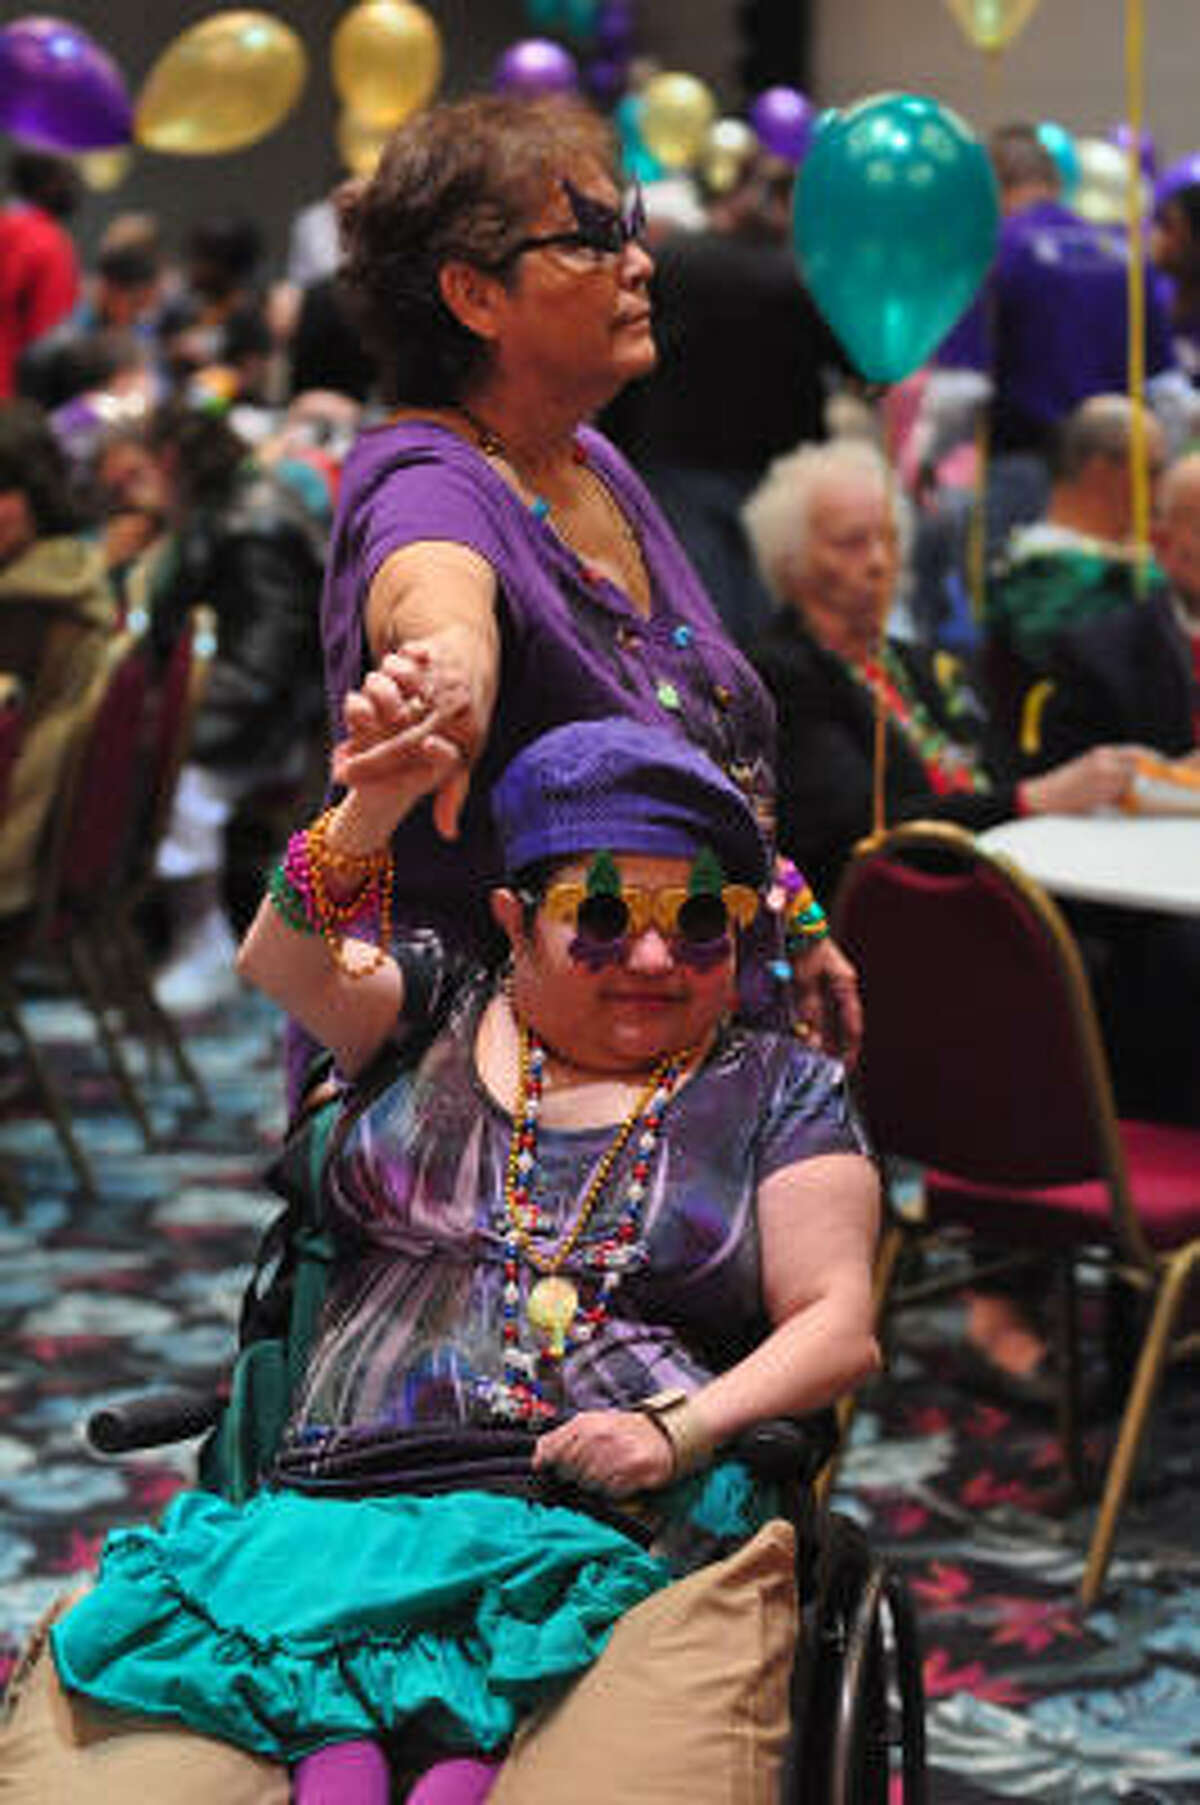 Moody;s Mardi Gras: Alma Sosa dances with her daughter, Mylena Perez.